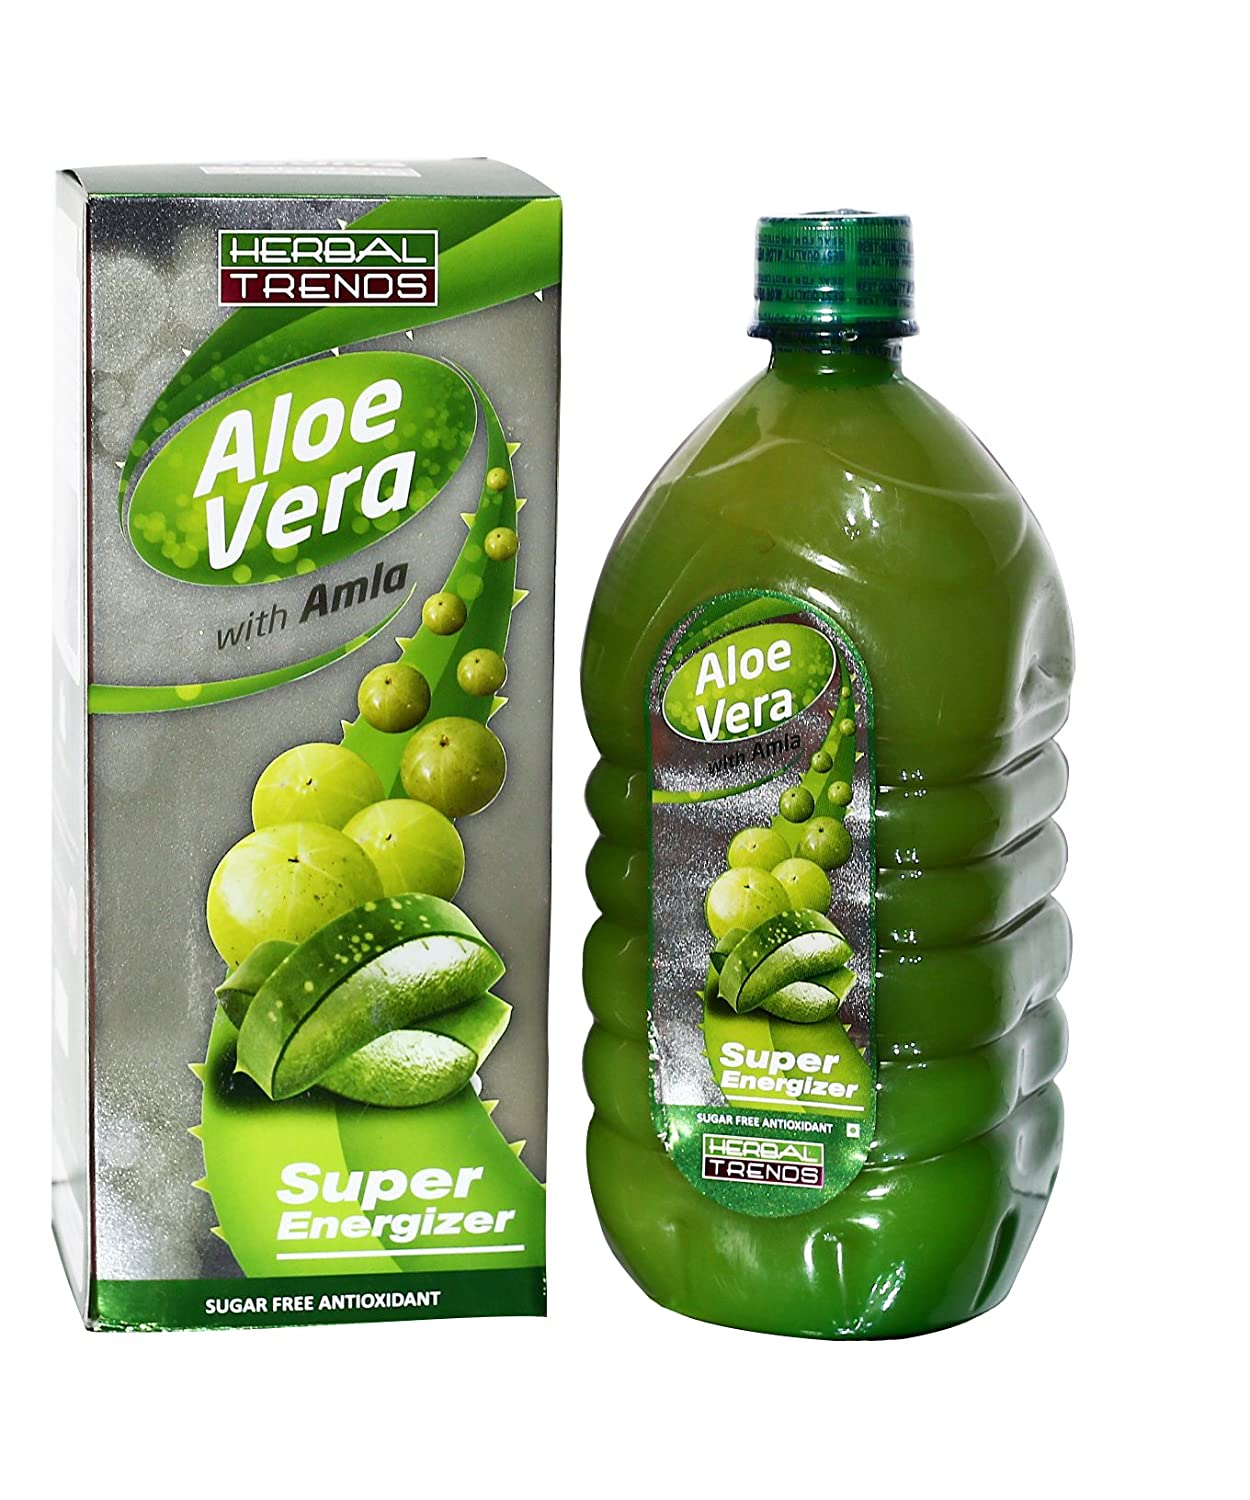 Aloe Vera and Alma juice- healthy living product